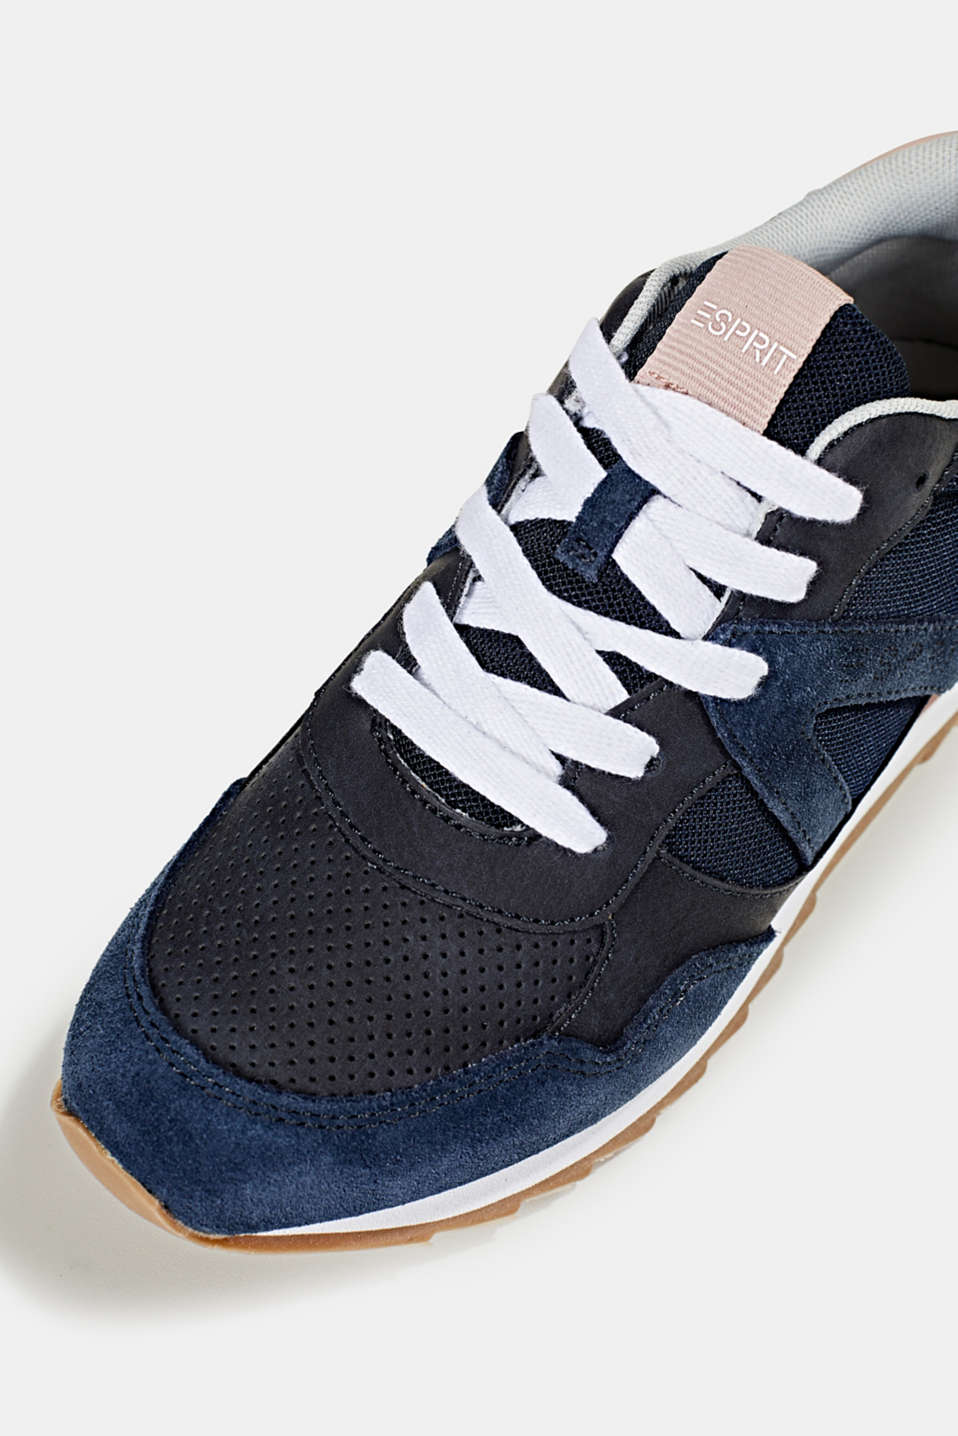 Fashion trainers in mixed materials, NAVY, detail image number 3